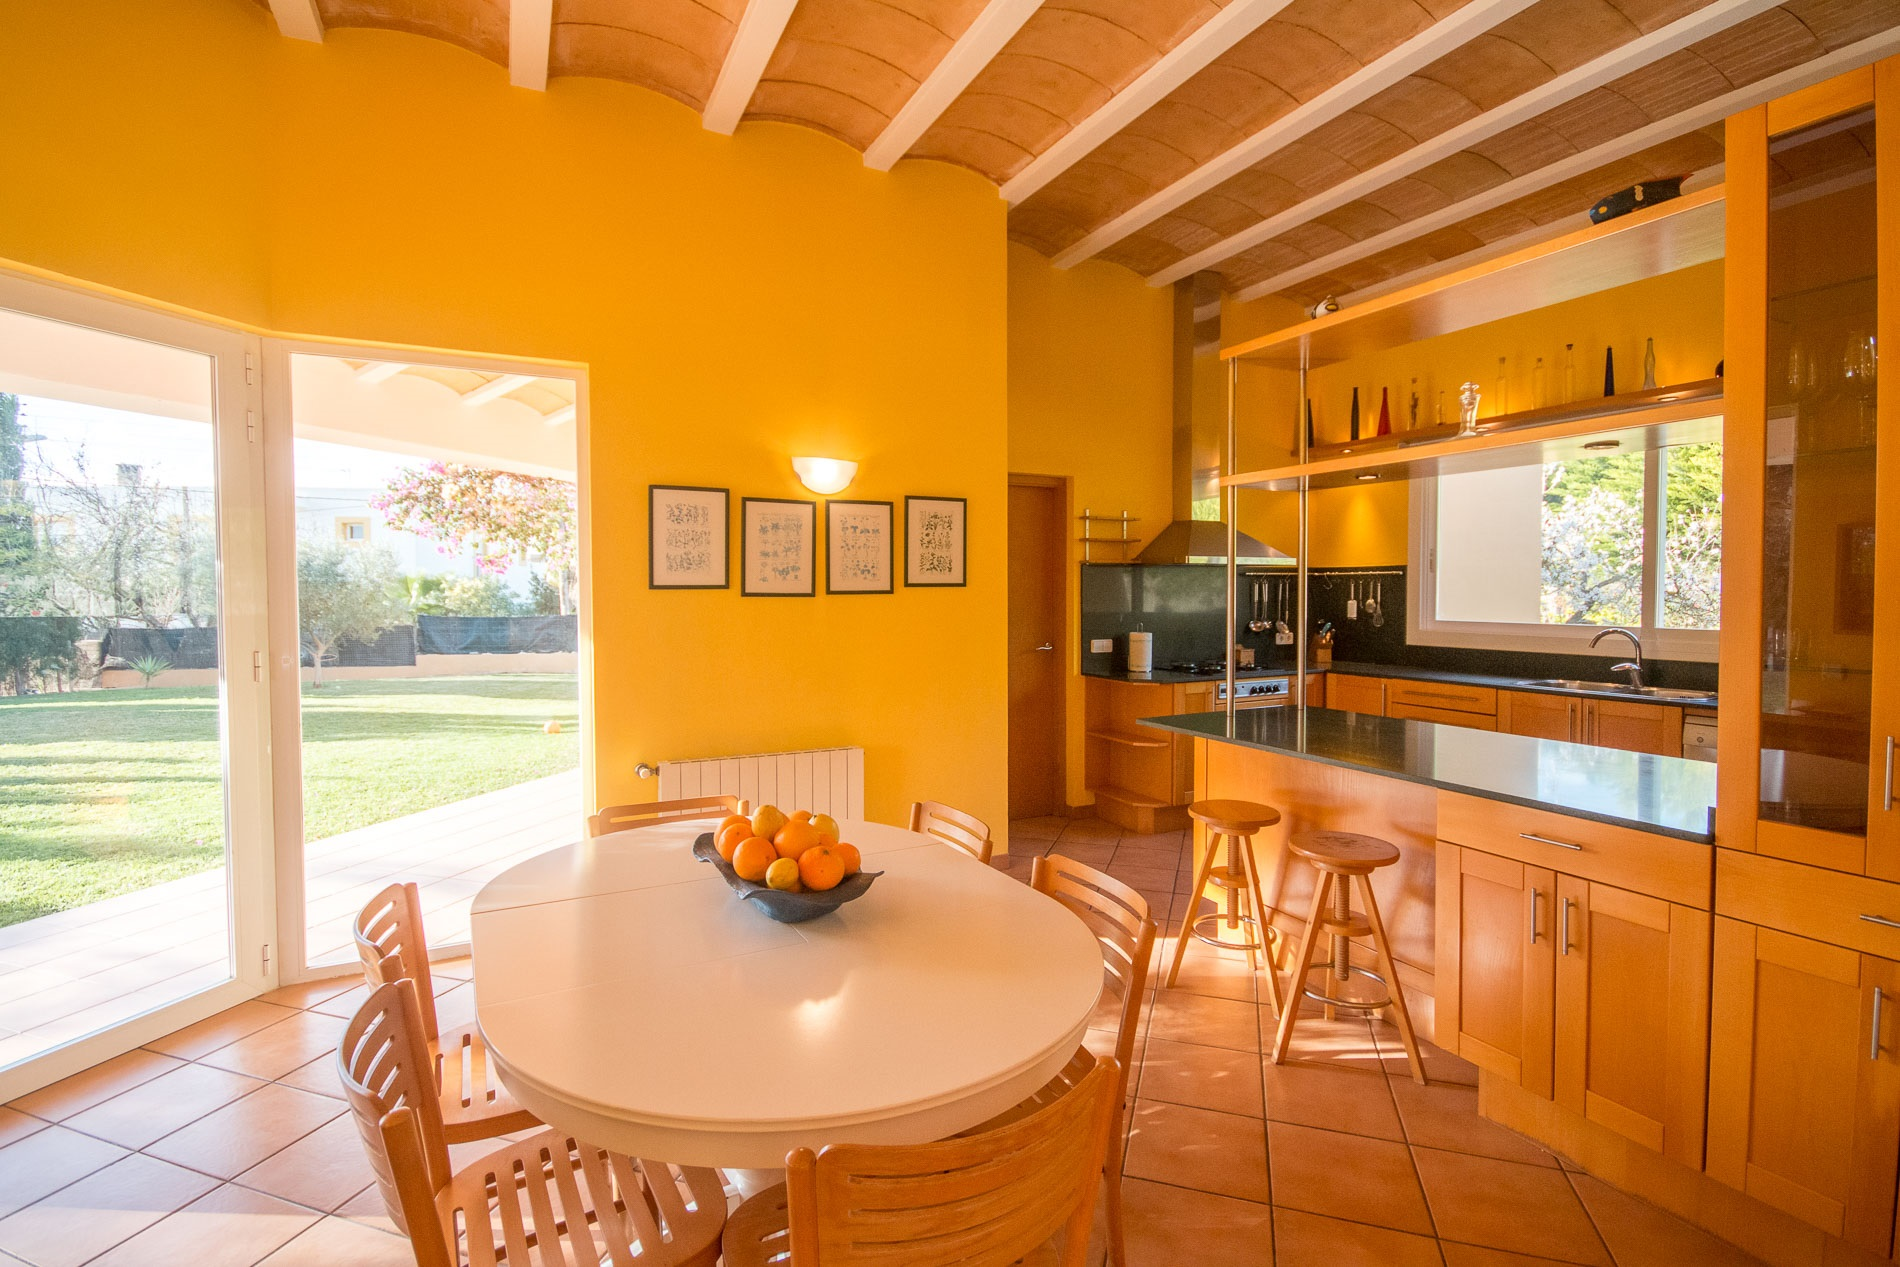 Charming villa in the most popular area of Ibiza